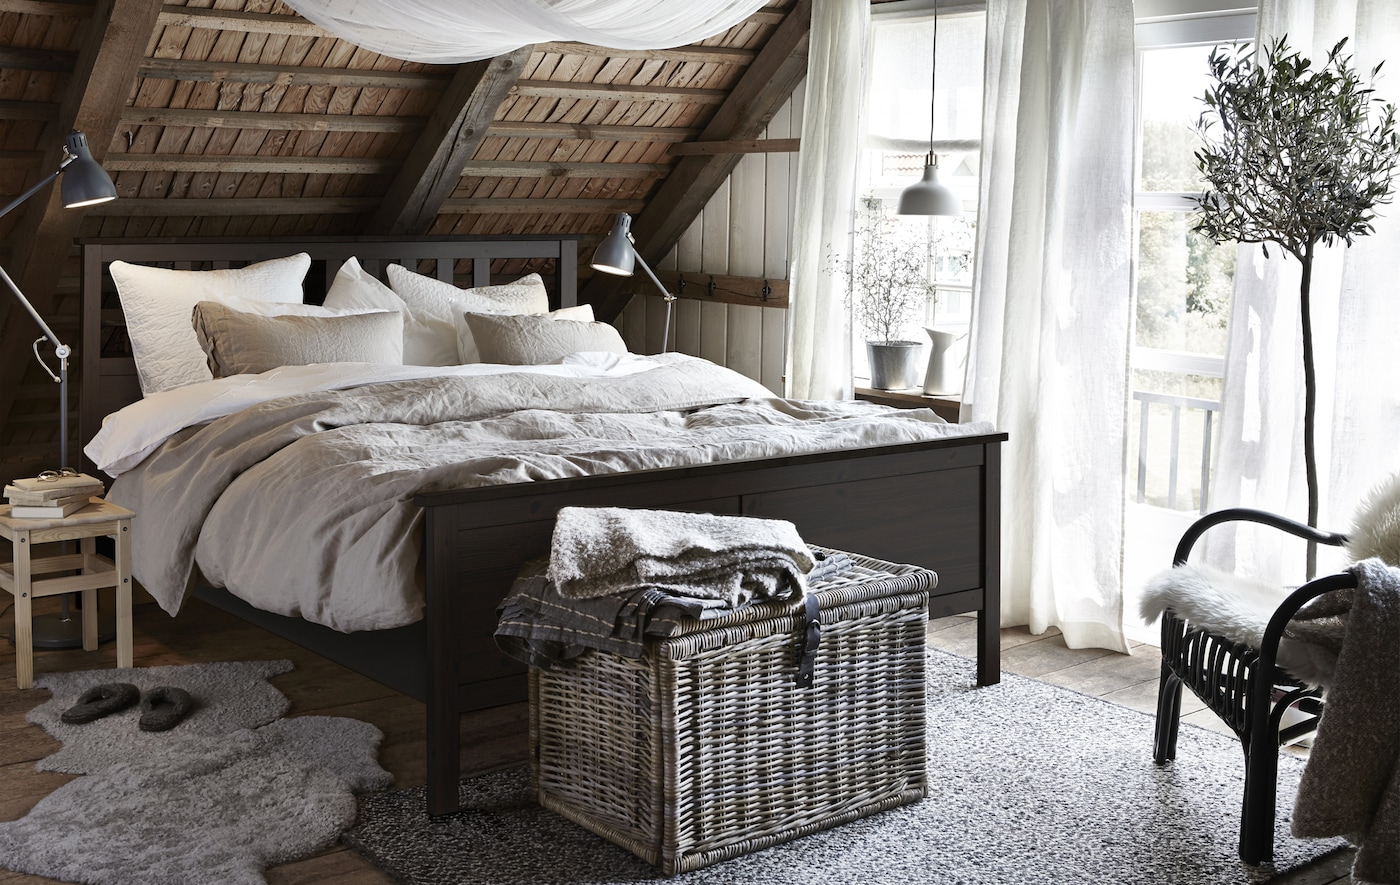 A rustic bedroom with a black-brown HEMNES bed frame, wicker basket, sheepskin on the floor, and sloped wooden ceilings.